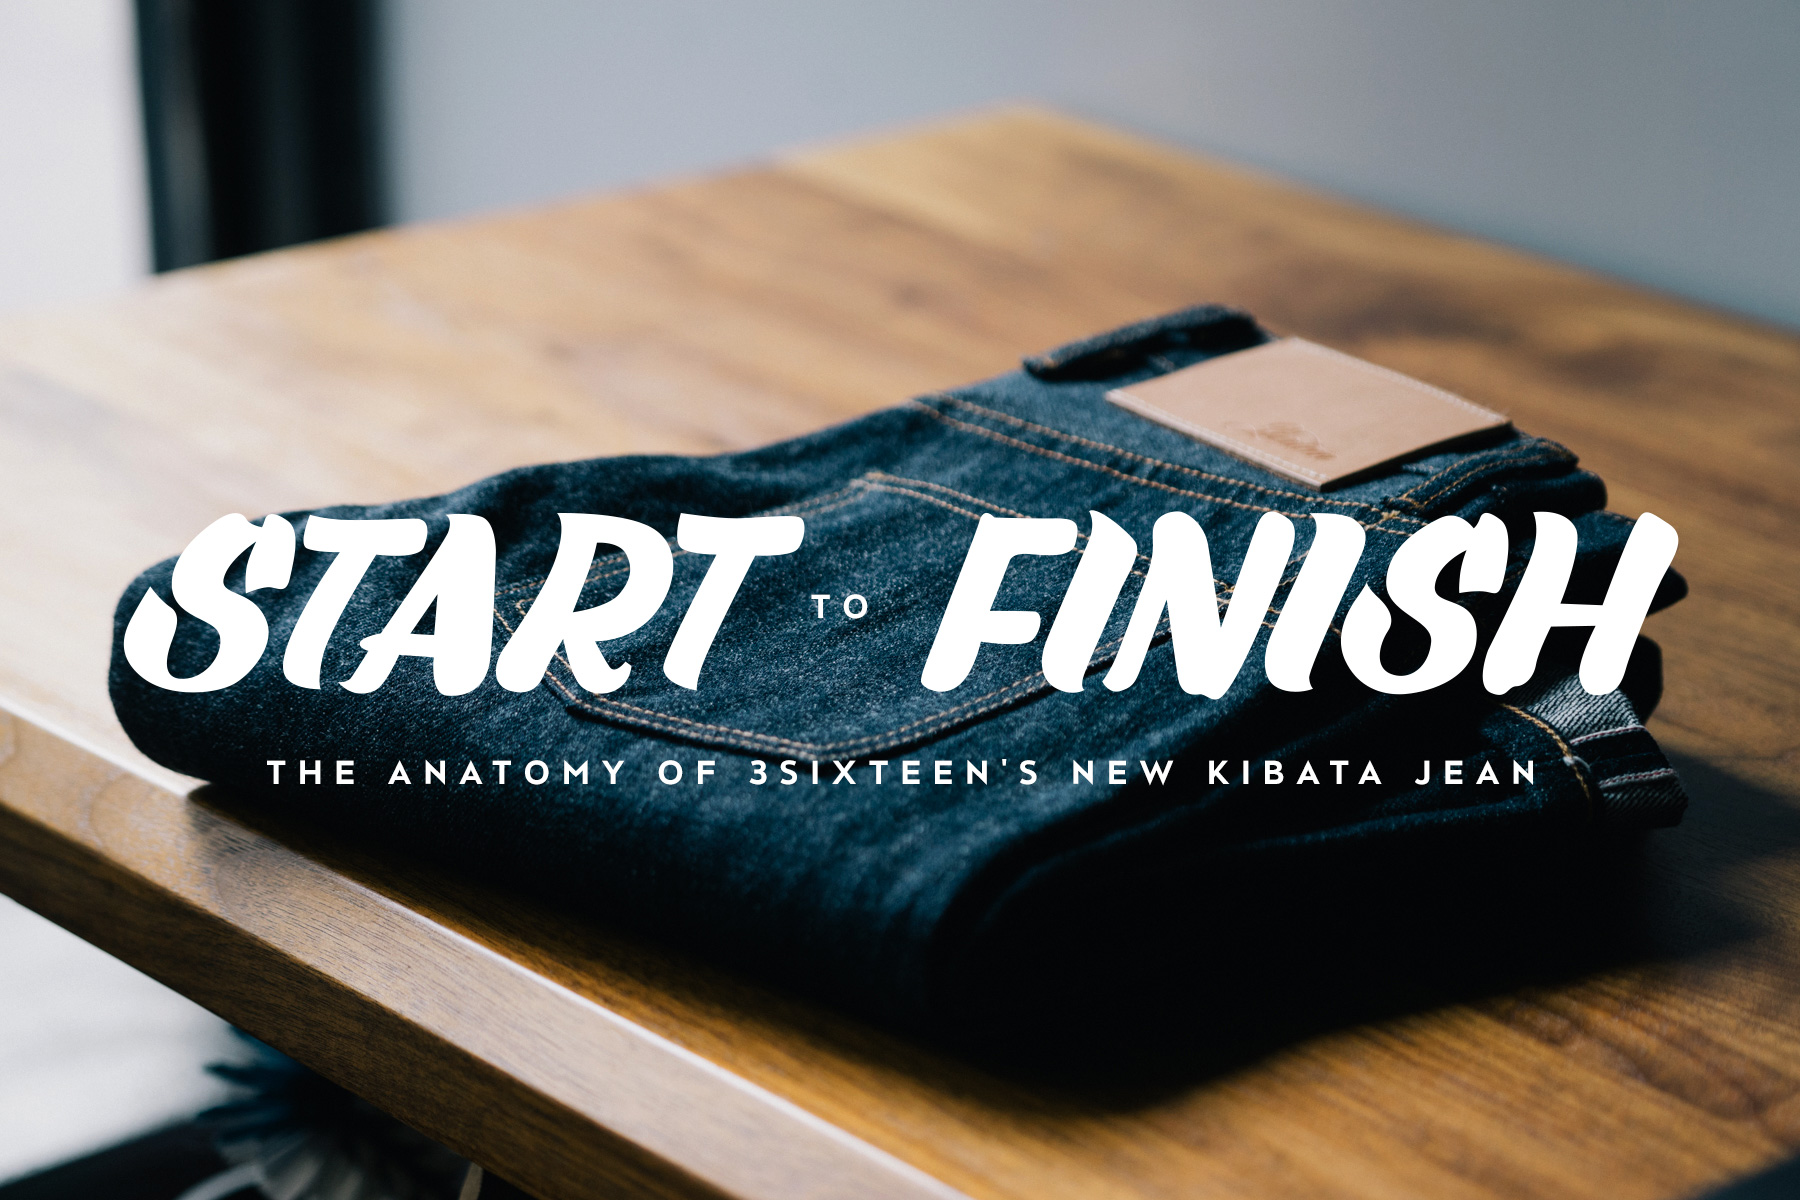 start to finish the anatomy of 3sixteens new unsanforized and untreated kibata jean